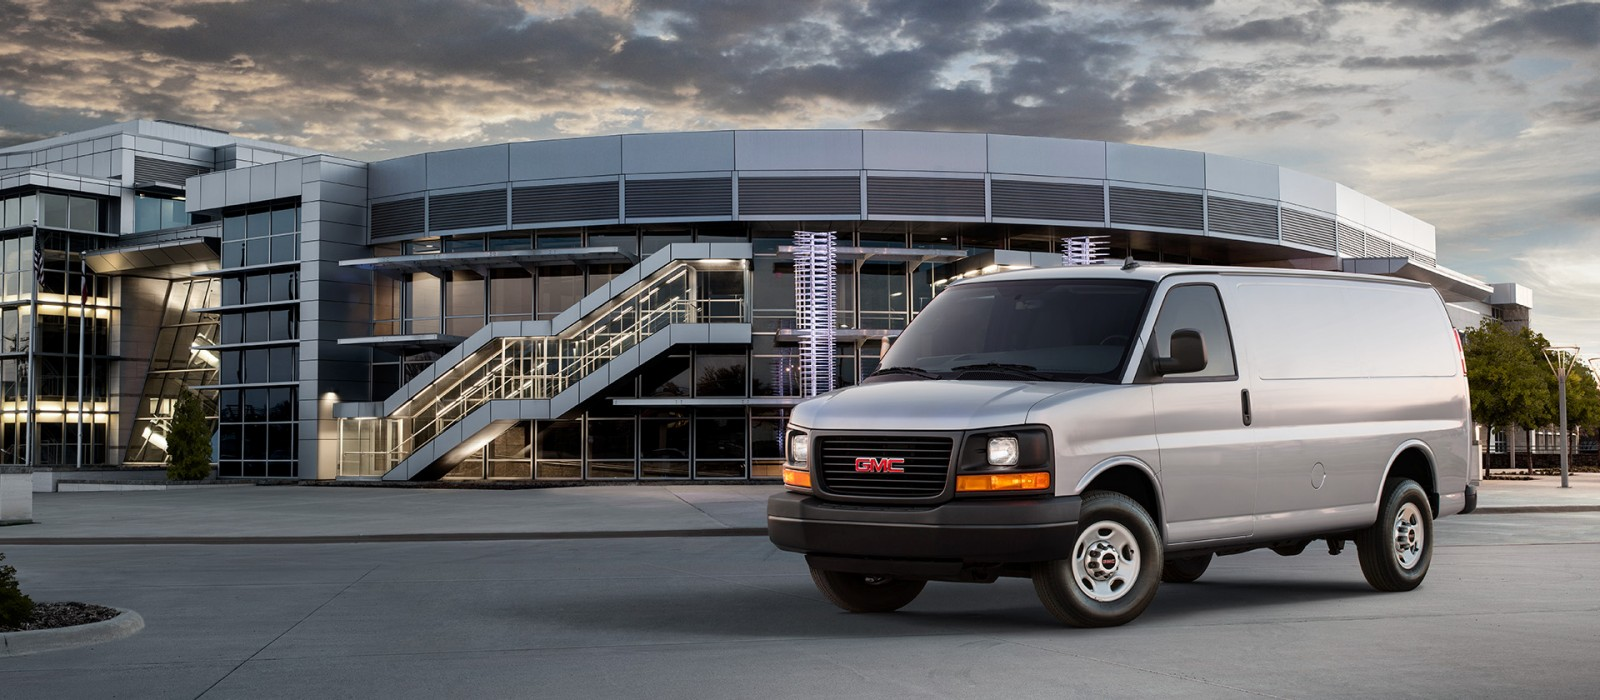 gmc and deals automotive tinney silverado or chevy prices sierra watch